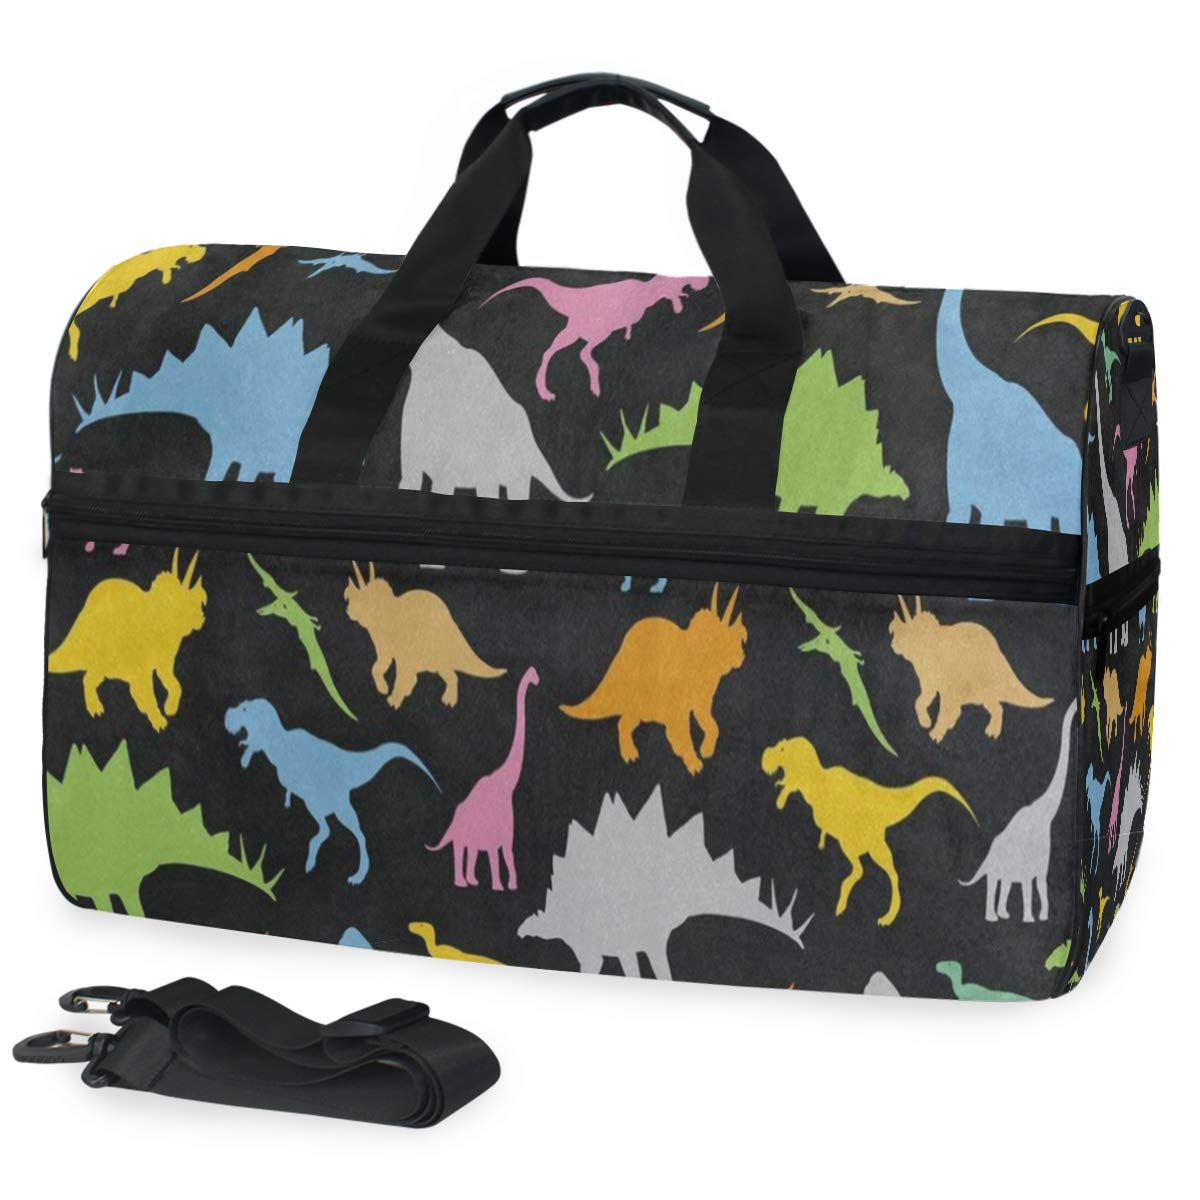 Colorful Dinosaur Black Large Canvas shoulder bag with Shoe Compartment Travel Tote Luggage Weekender Duffle Bag